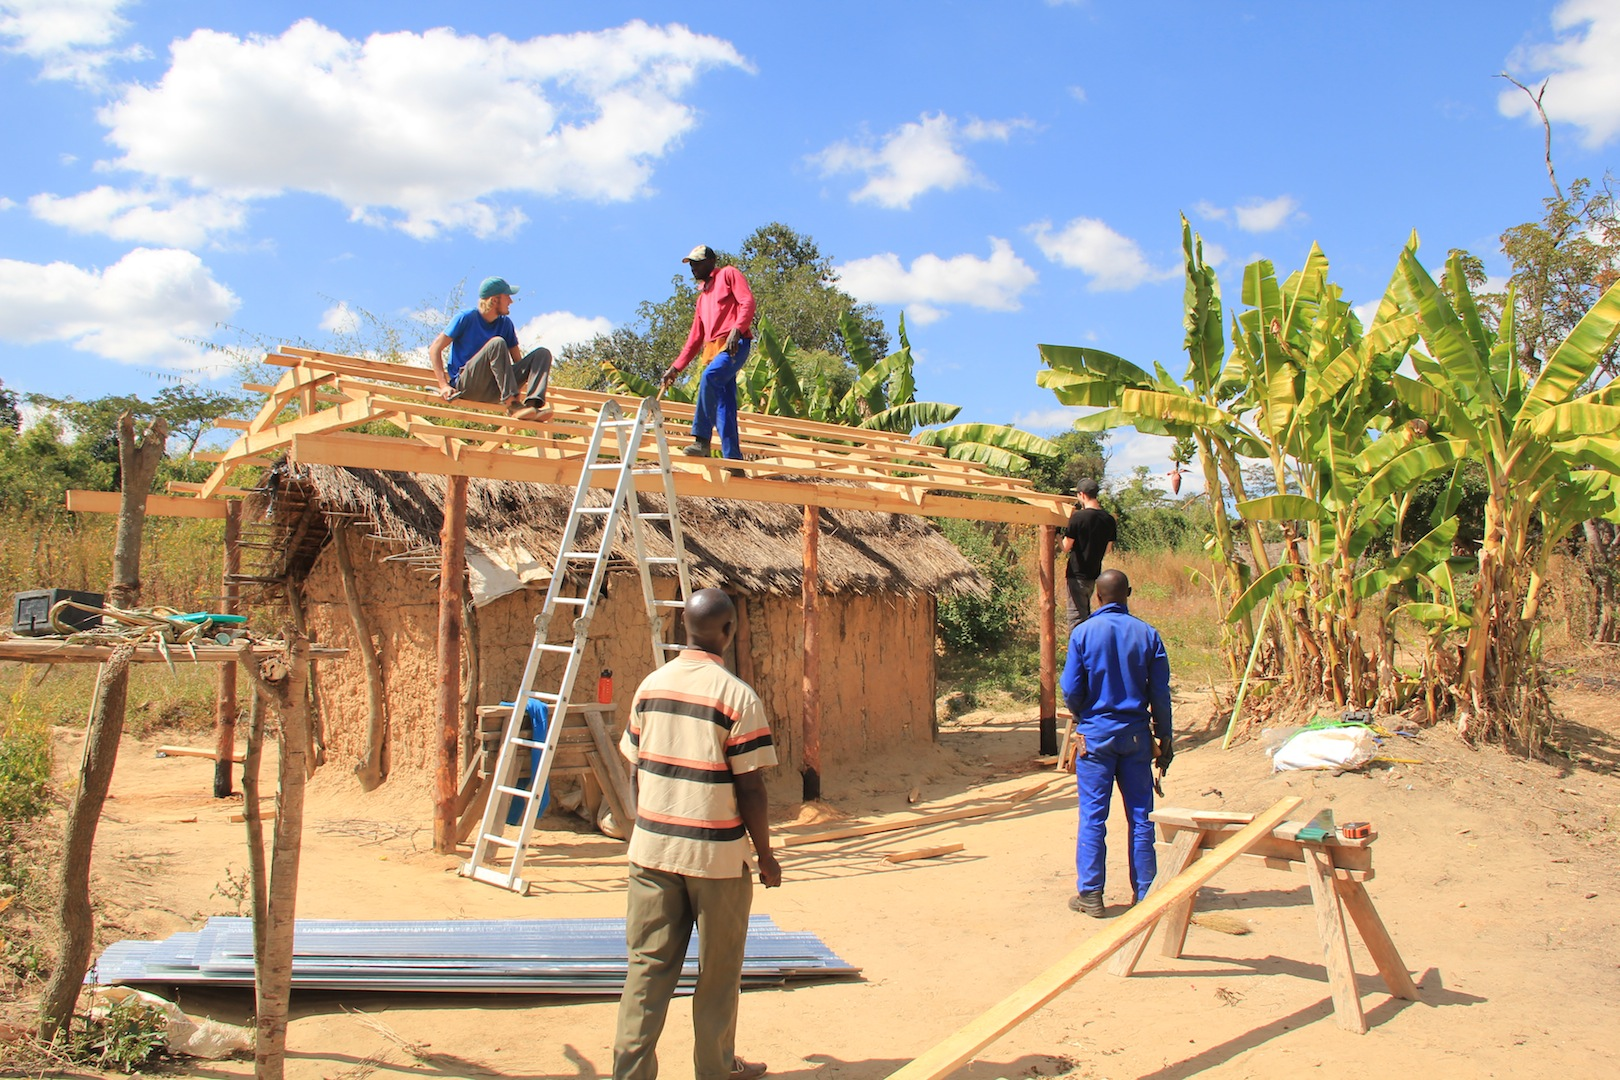 Devon in Zambia (sitting on the roof). Devon supported the Regional Support Team through maintenance and community home repairs with our visiting teams.